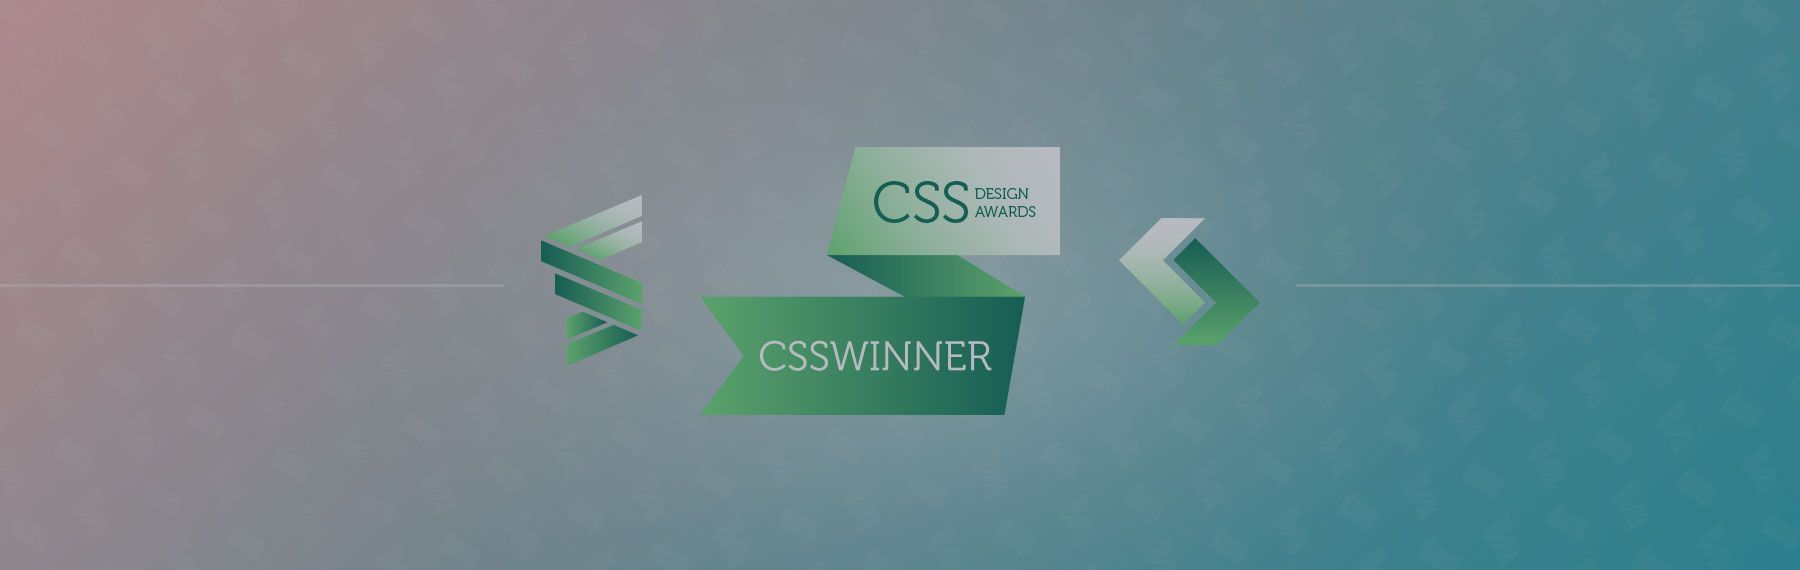 Награды CSS Design Awards и CSSWinner наши!